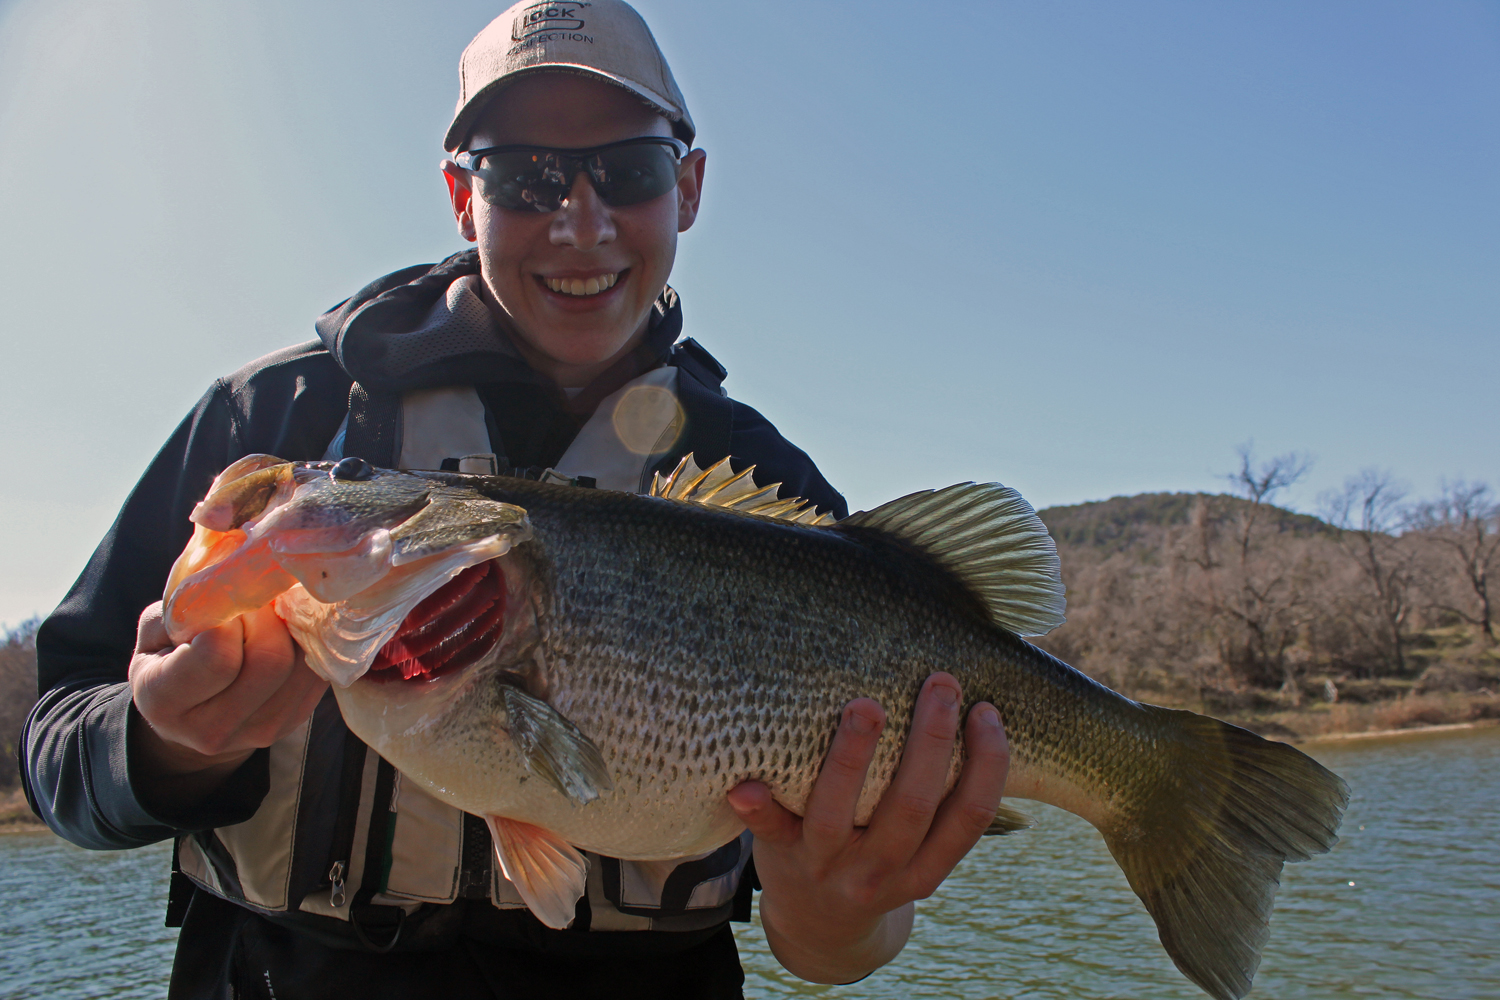 Clint Taylor with a 12-pound bass on the Brazos River